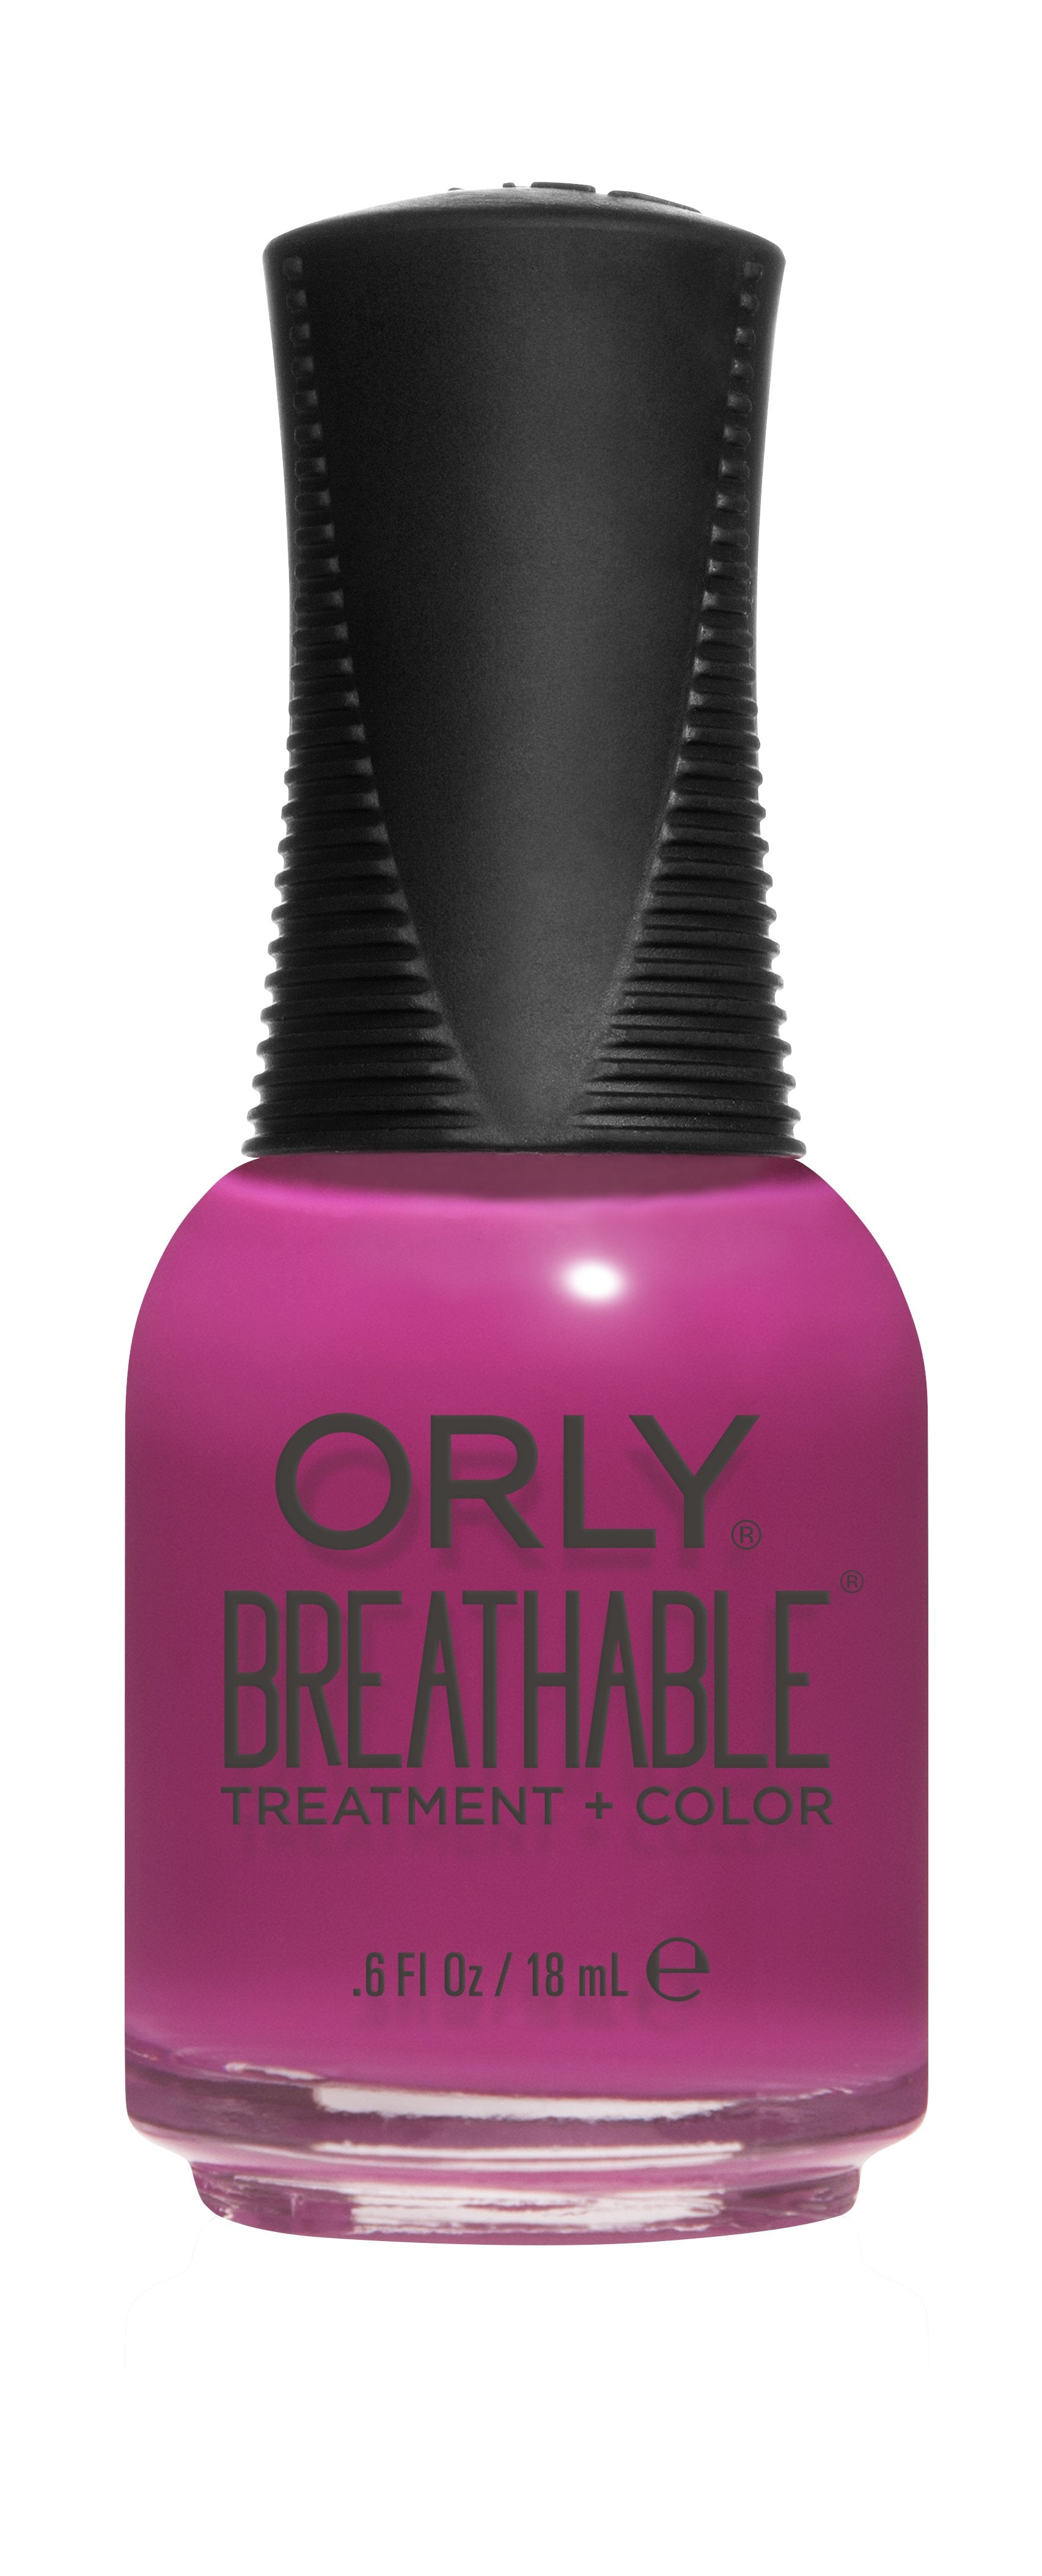 Give Me A Break - ORLY Breathable Treatment + Color